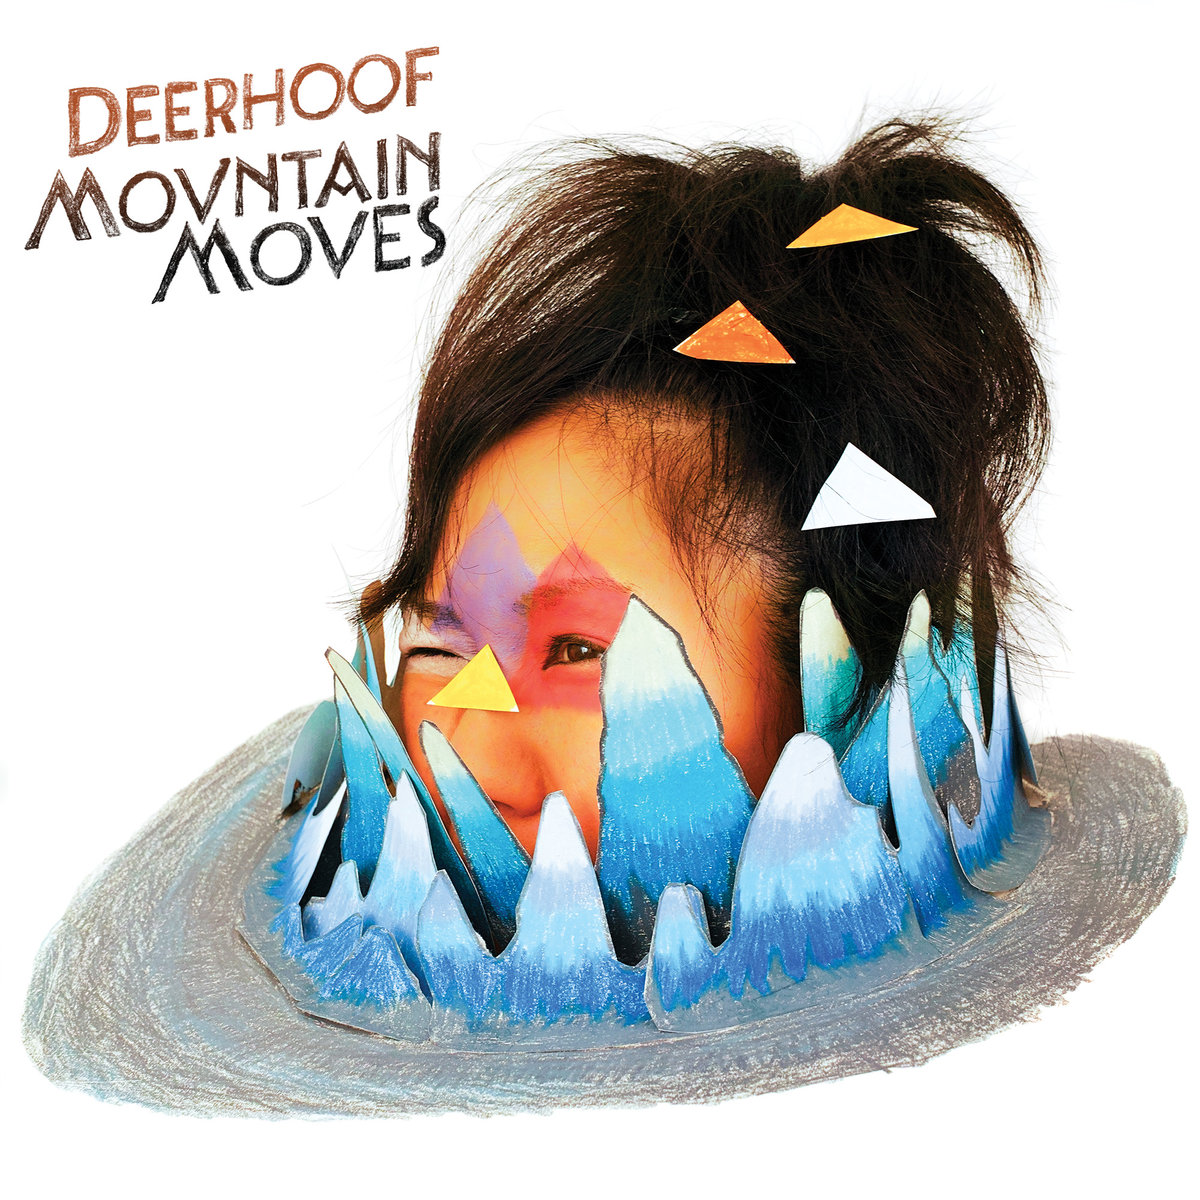 Copy of Copy of Deerhoof - Mountain Moves